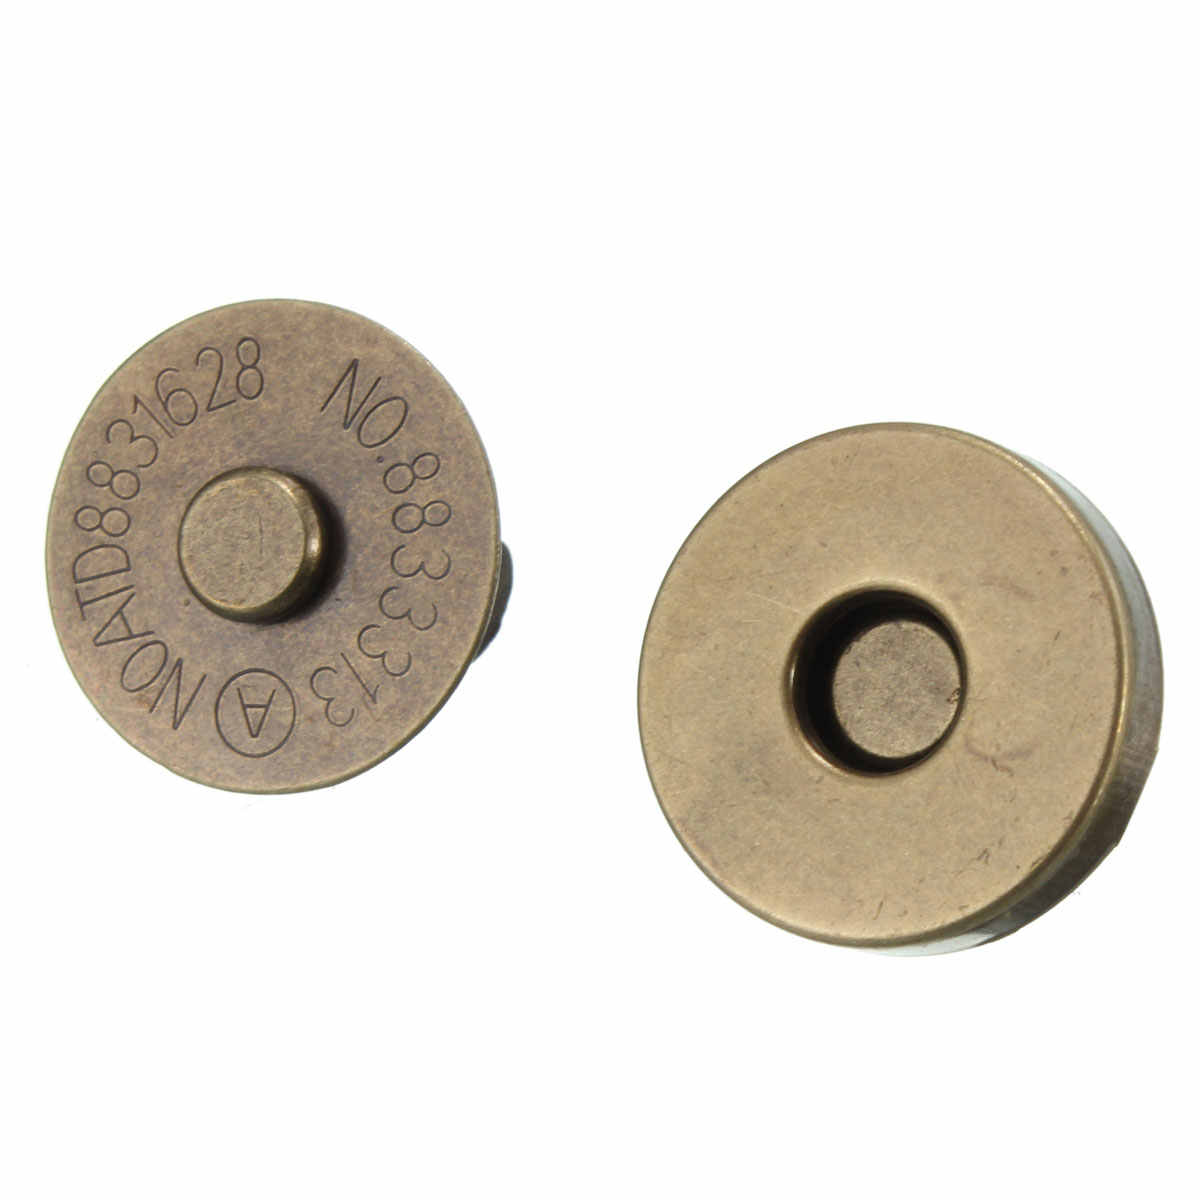 5pc/lot 18MM Magnetic Snap Fasteners Clasps Buttons Handbag Purse Wallet Craft Bags Parts Accessories DIY Replacement Button